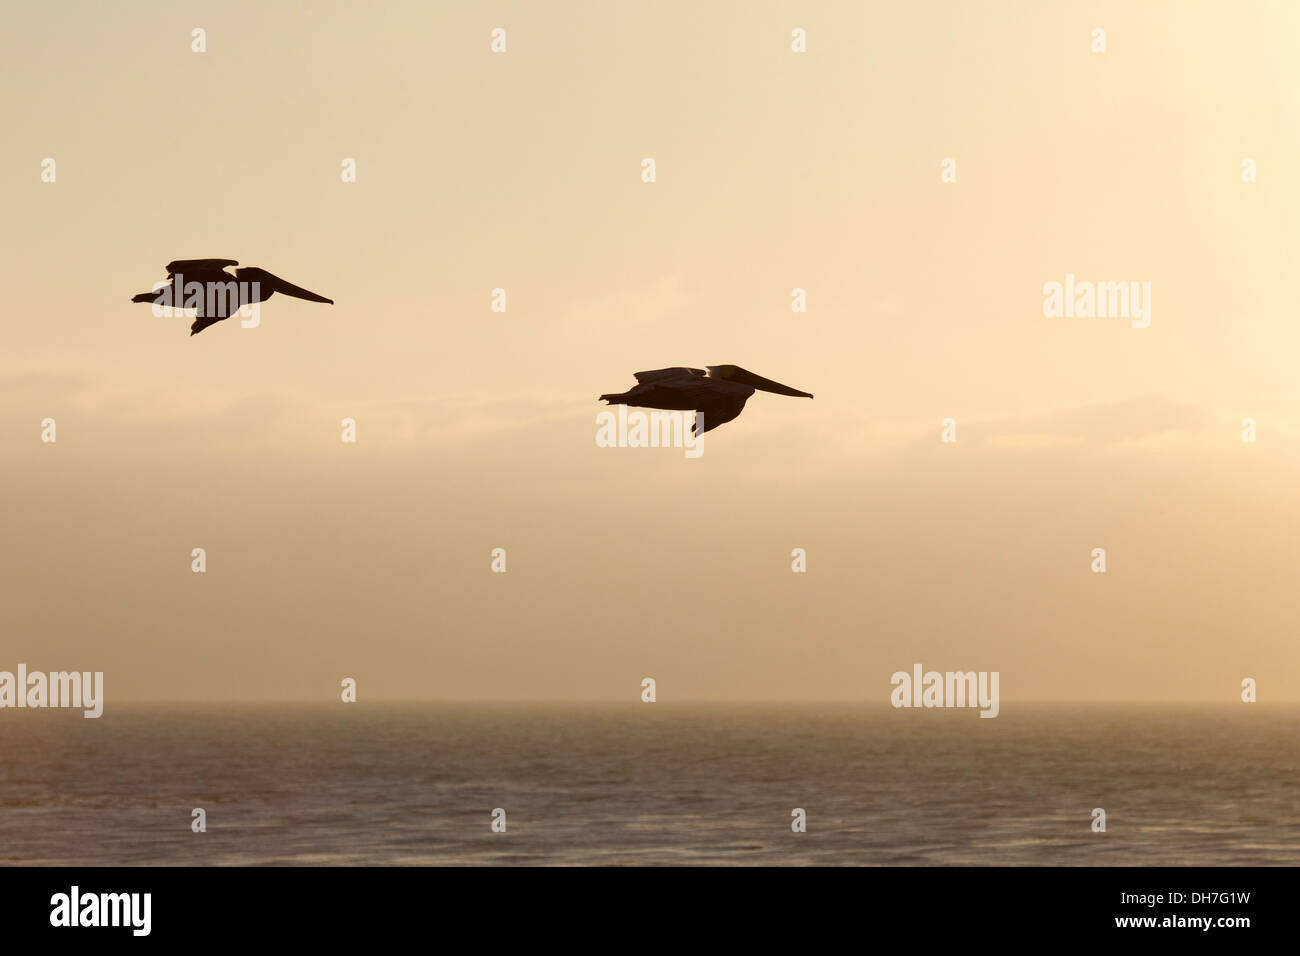 Two Brown Pelicans Cruising over the Ocean at Sunset Stock Photo